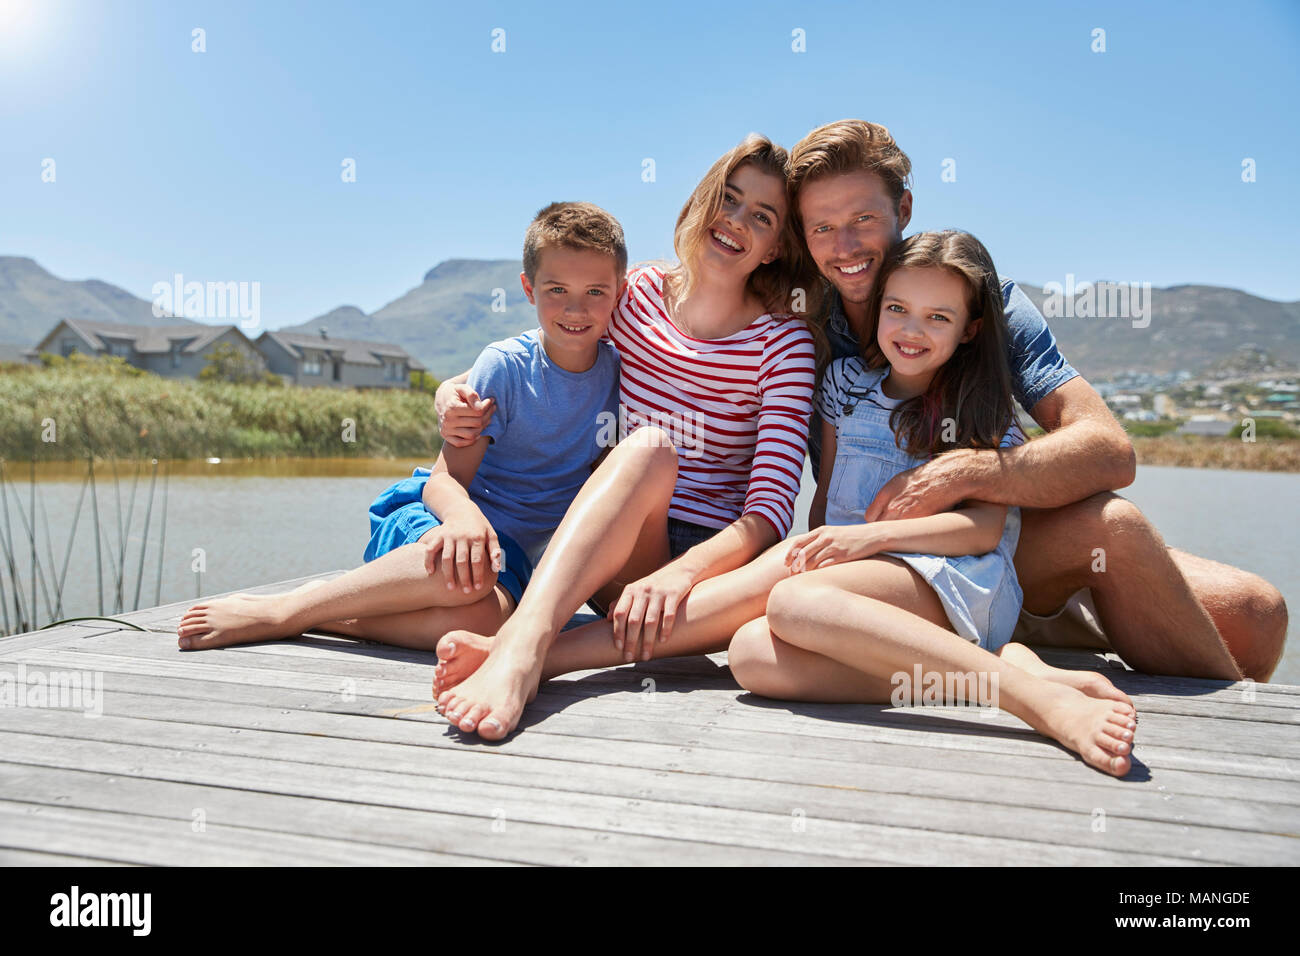 Portrait Of Smiling Family Sitting on Wooden Jetty By Lake Photo Stock